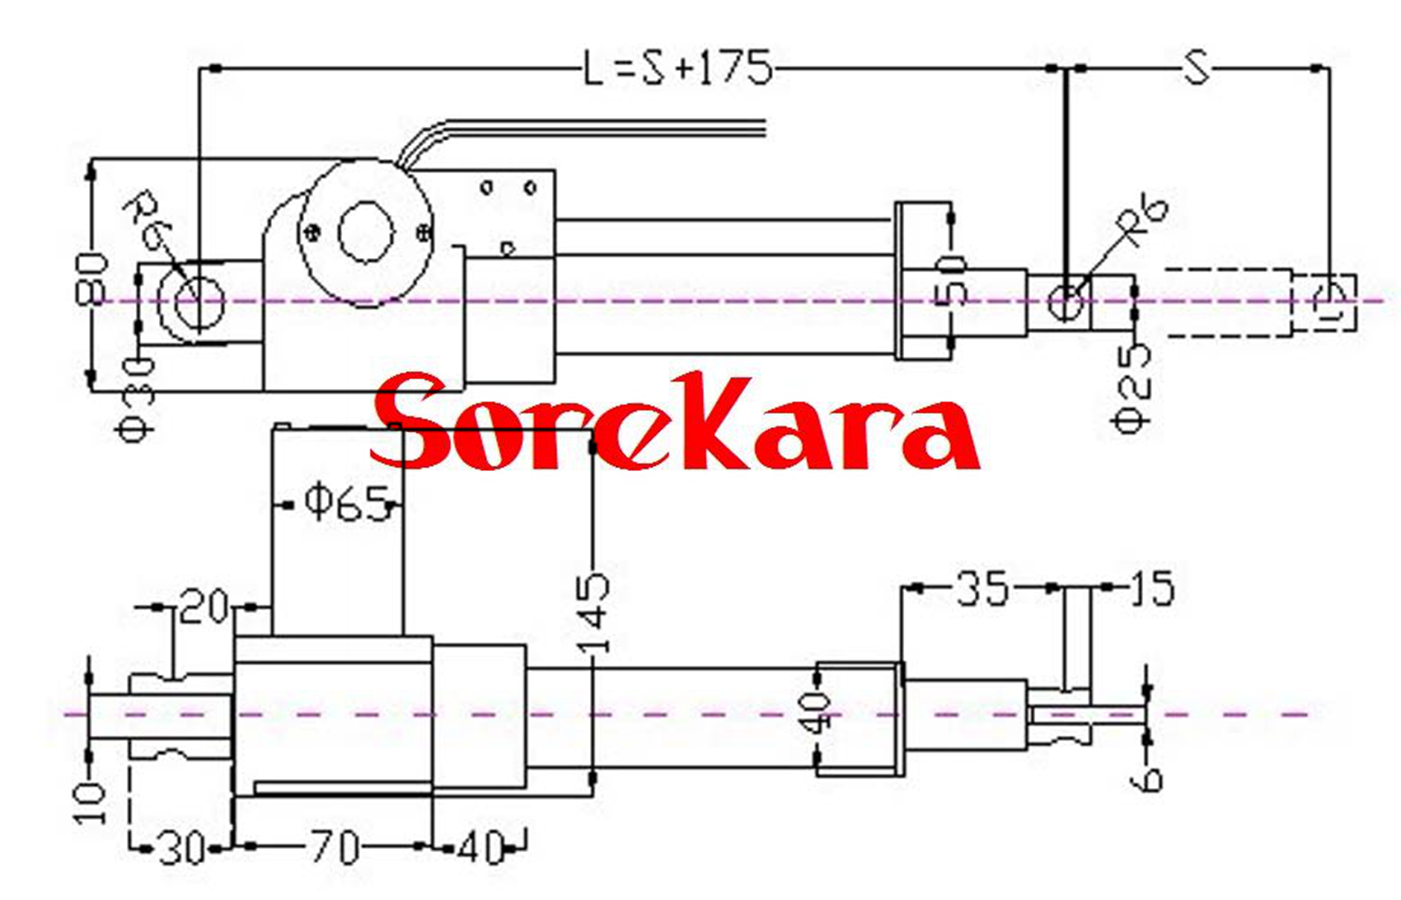 6000n Dc12 24v Stroke 30 500 Tg 100 Multi Function Linear Actuator Schematic Detail